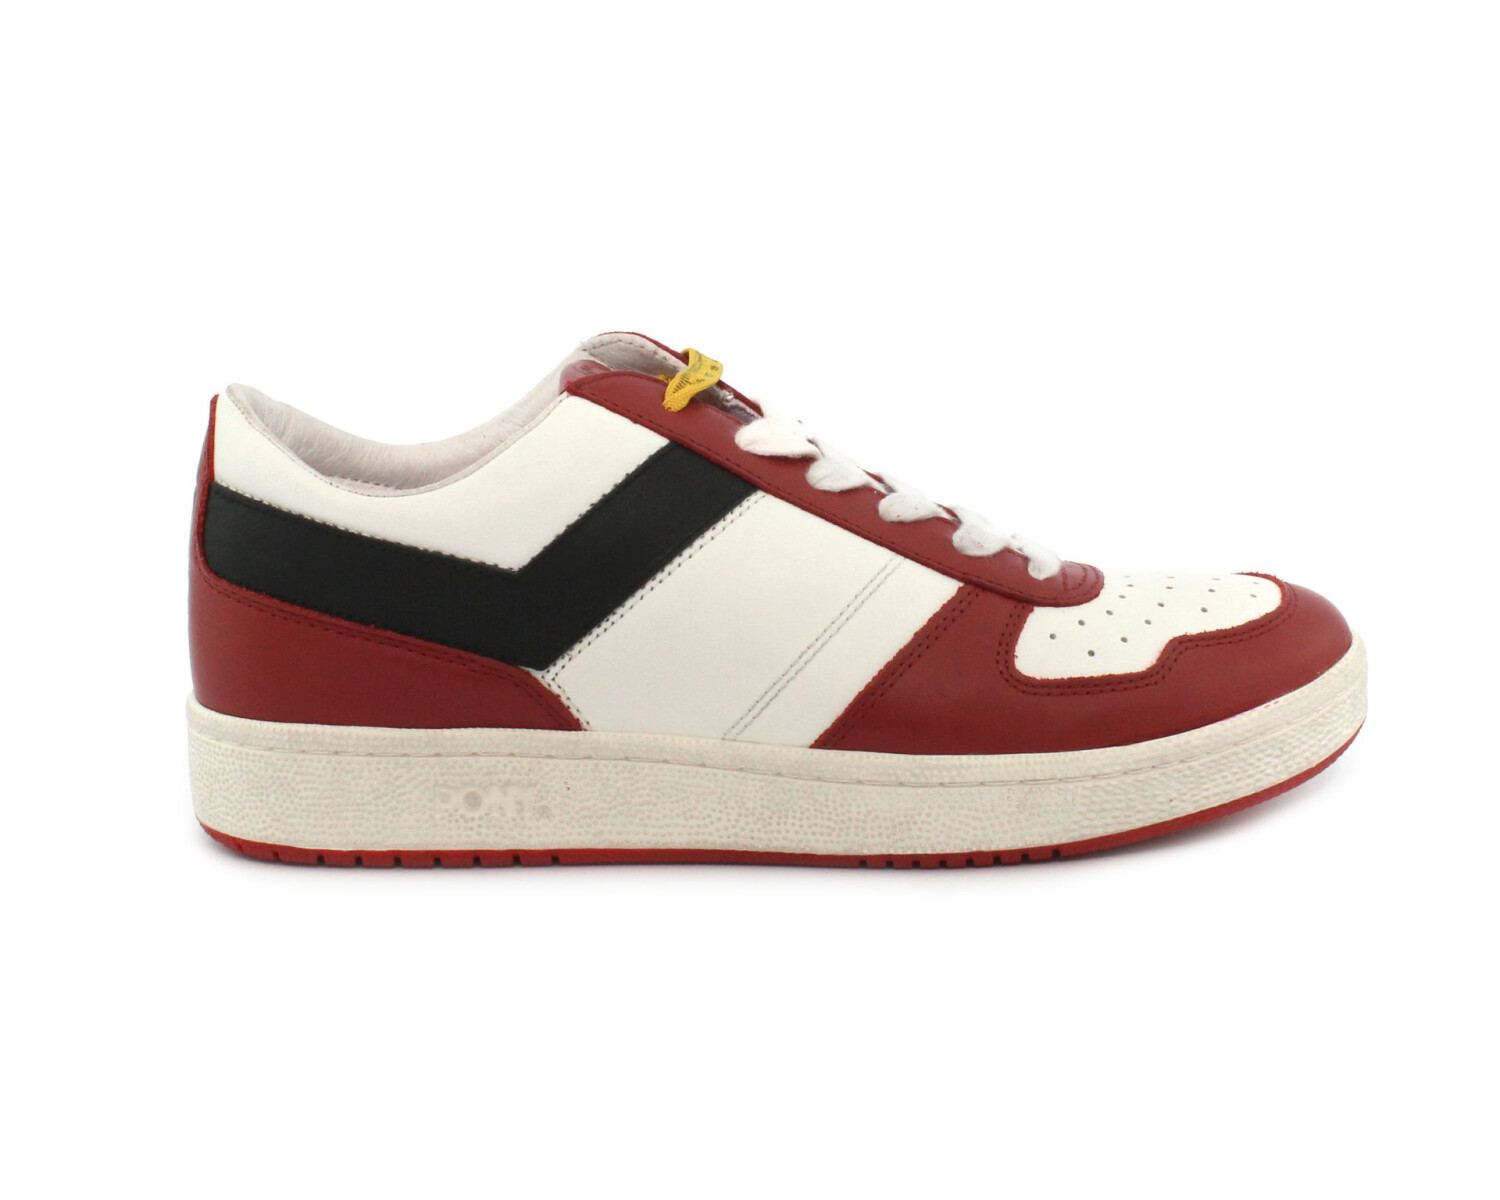 Sneaker PONY CITY WINGS 283 CLOUD DANCER RED/BLACK